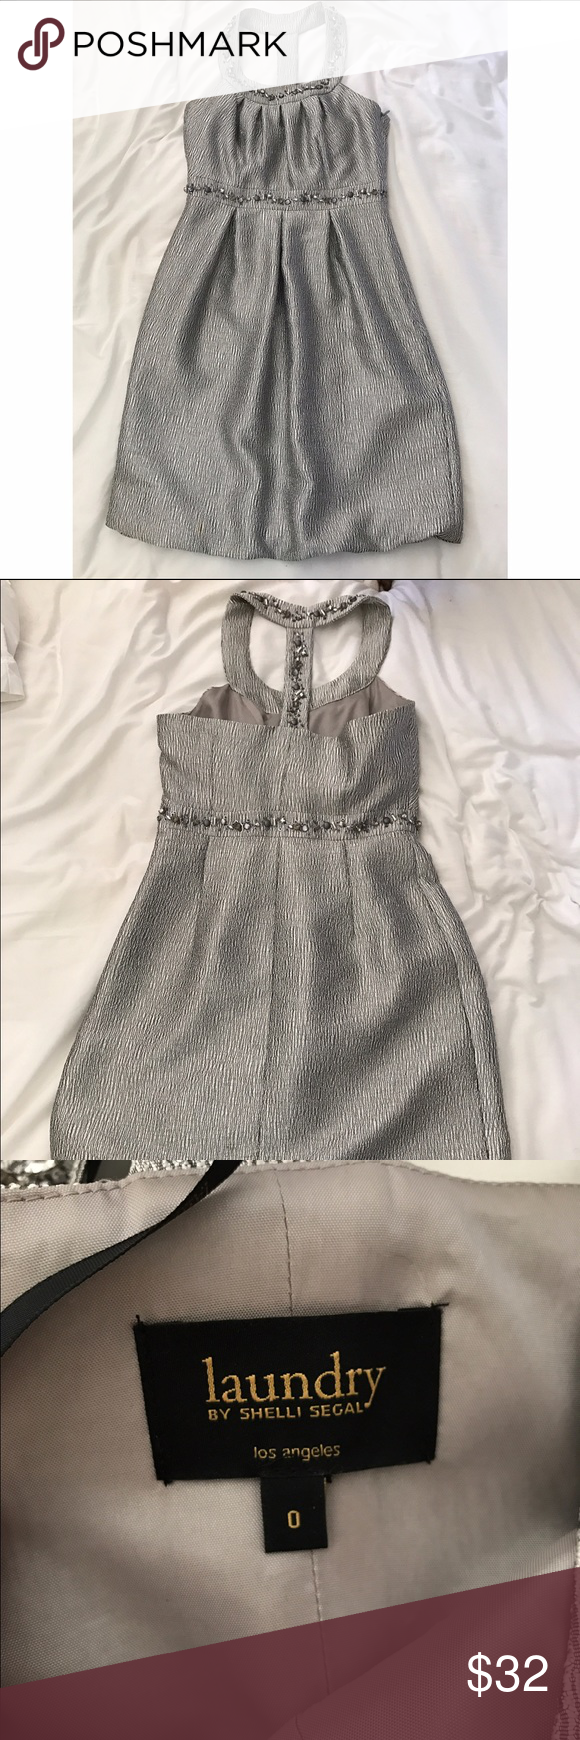 Laundry by Shelli Segal Silver Beaded Dress (sz 0) Short dress, silver (shiny). Halter neckline with accent beads on neckline and under chest. Size 0. Great for holiday party, worn only once. Laundry by Shelli Segal Dresses Mini